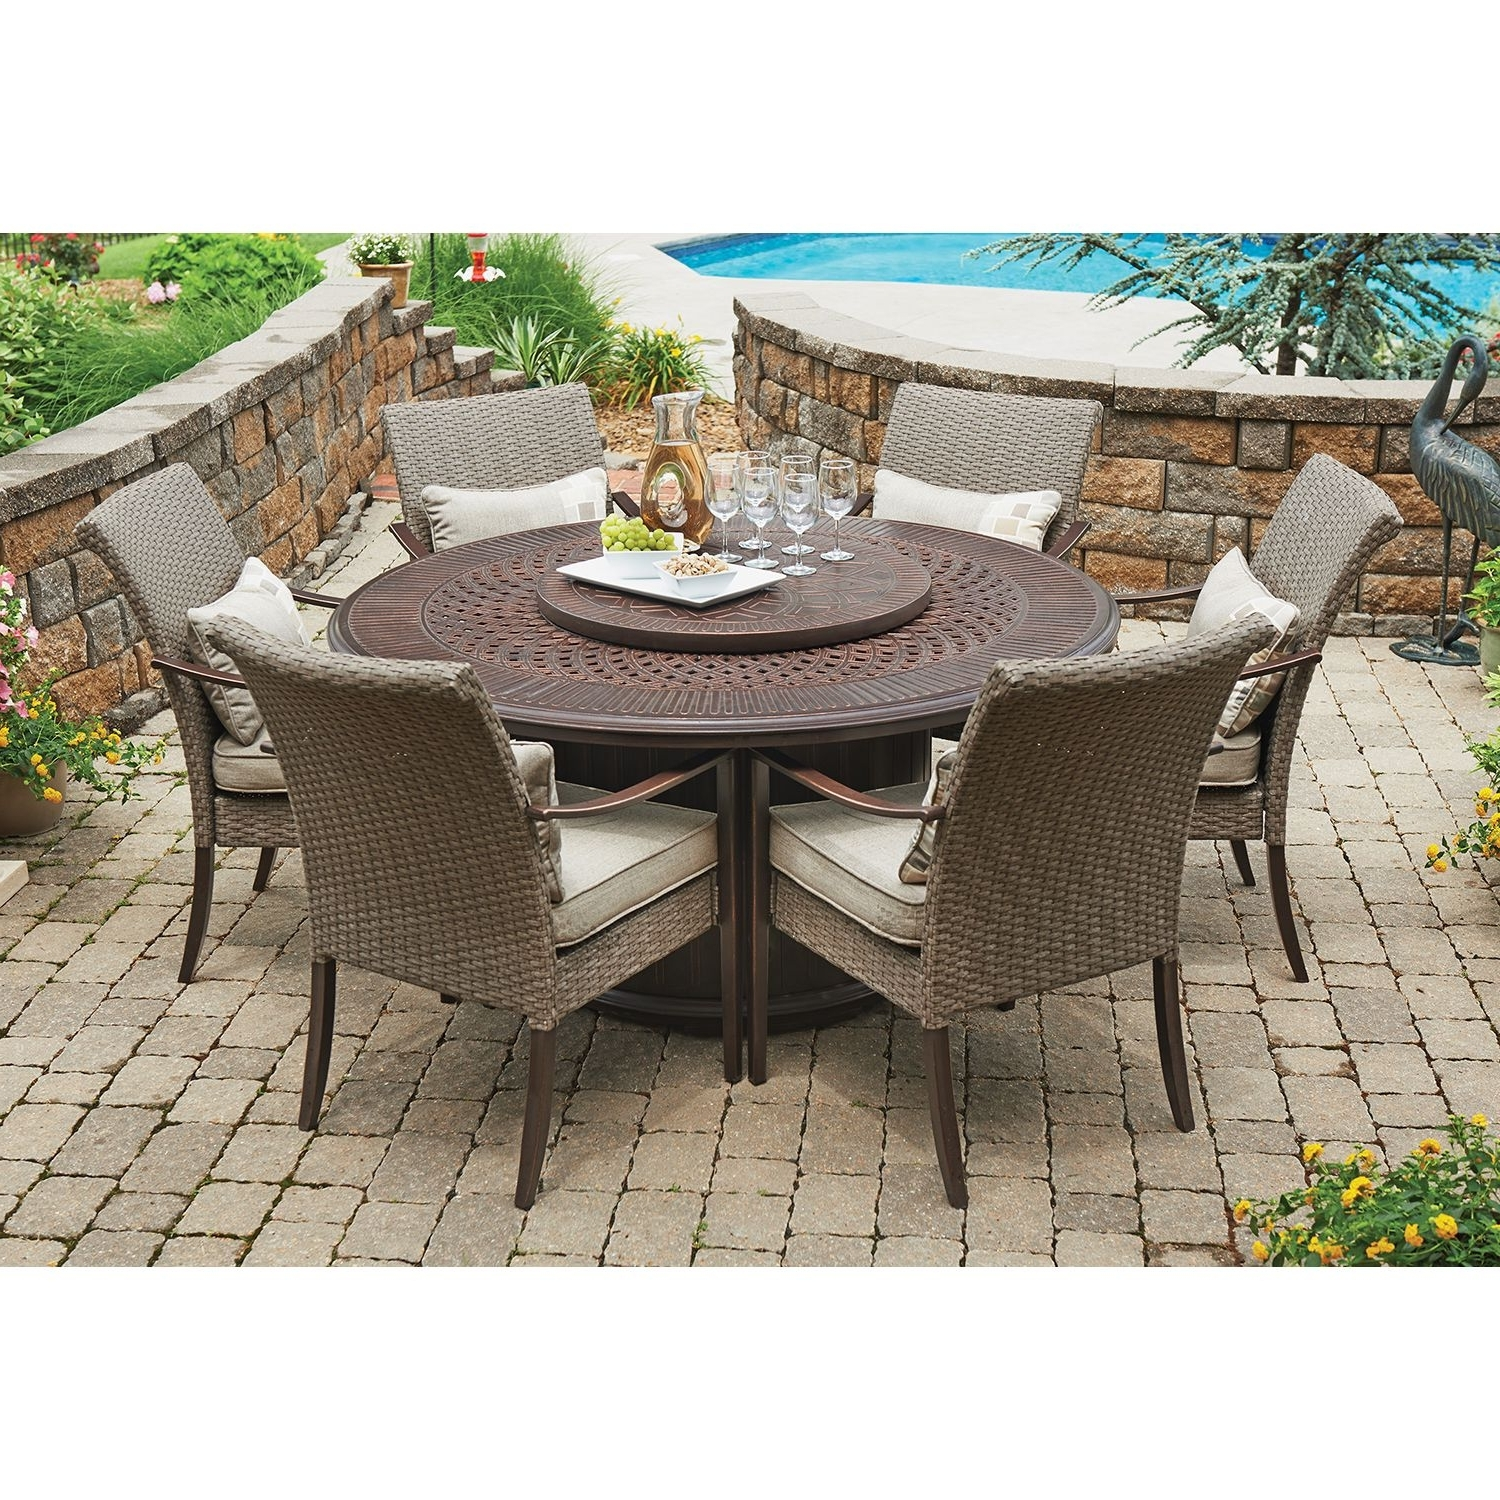 Widely Used Craigslist Patio Furniture Home Design Ideas Adidascc Sonic From 8 With Patio Conversation Sets At Sam's Club (View 8 of 20)